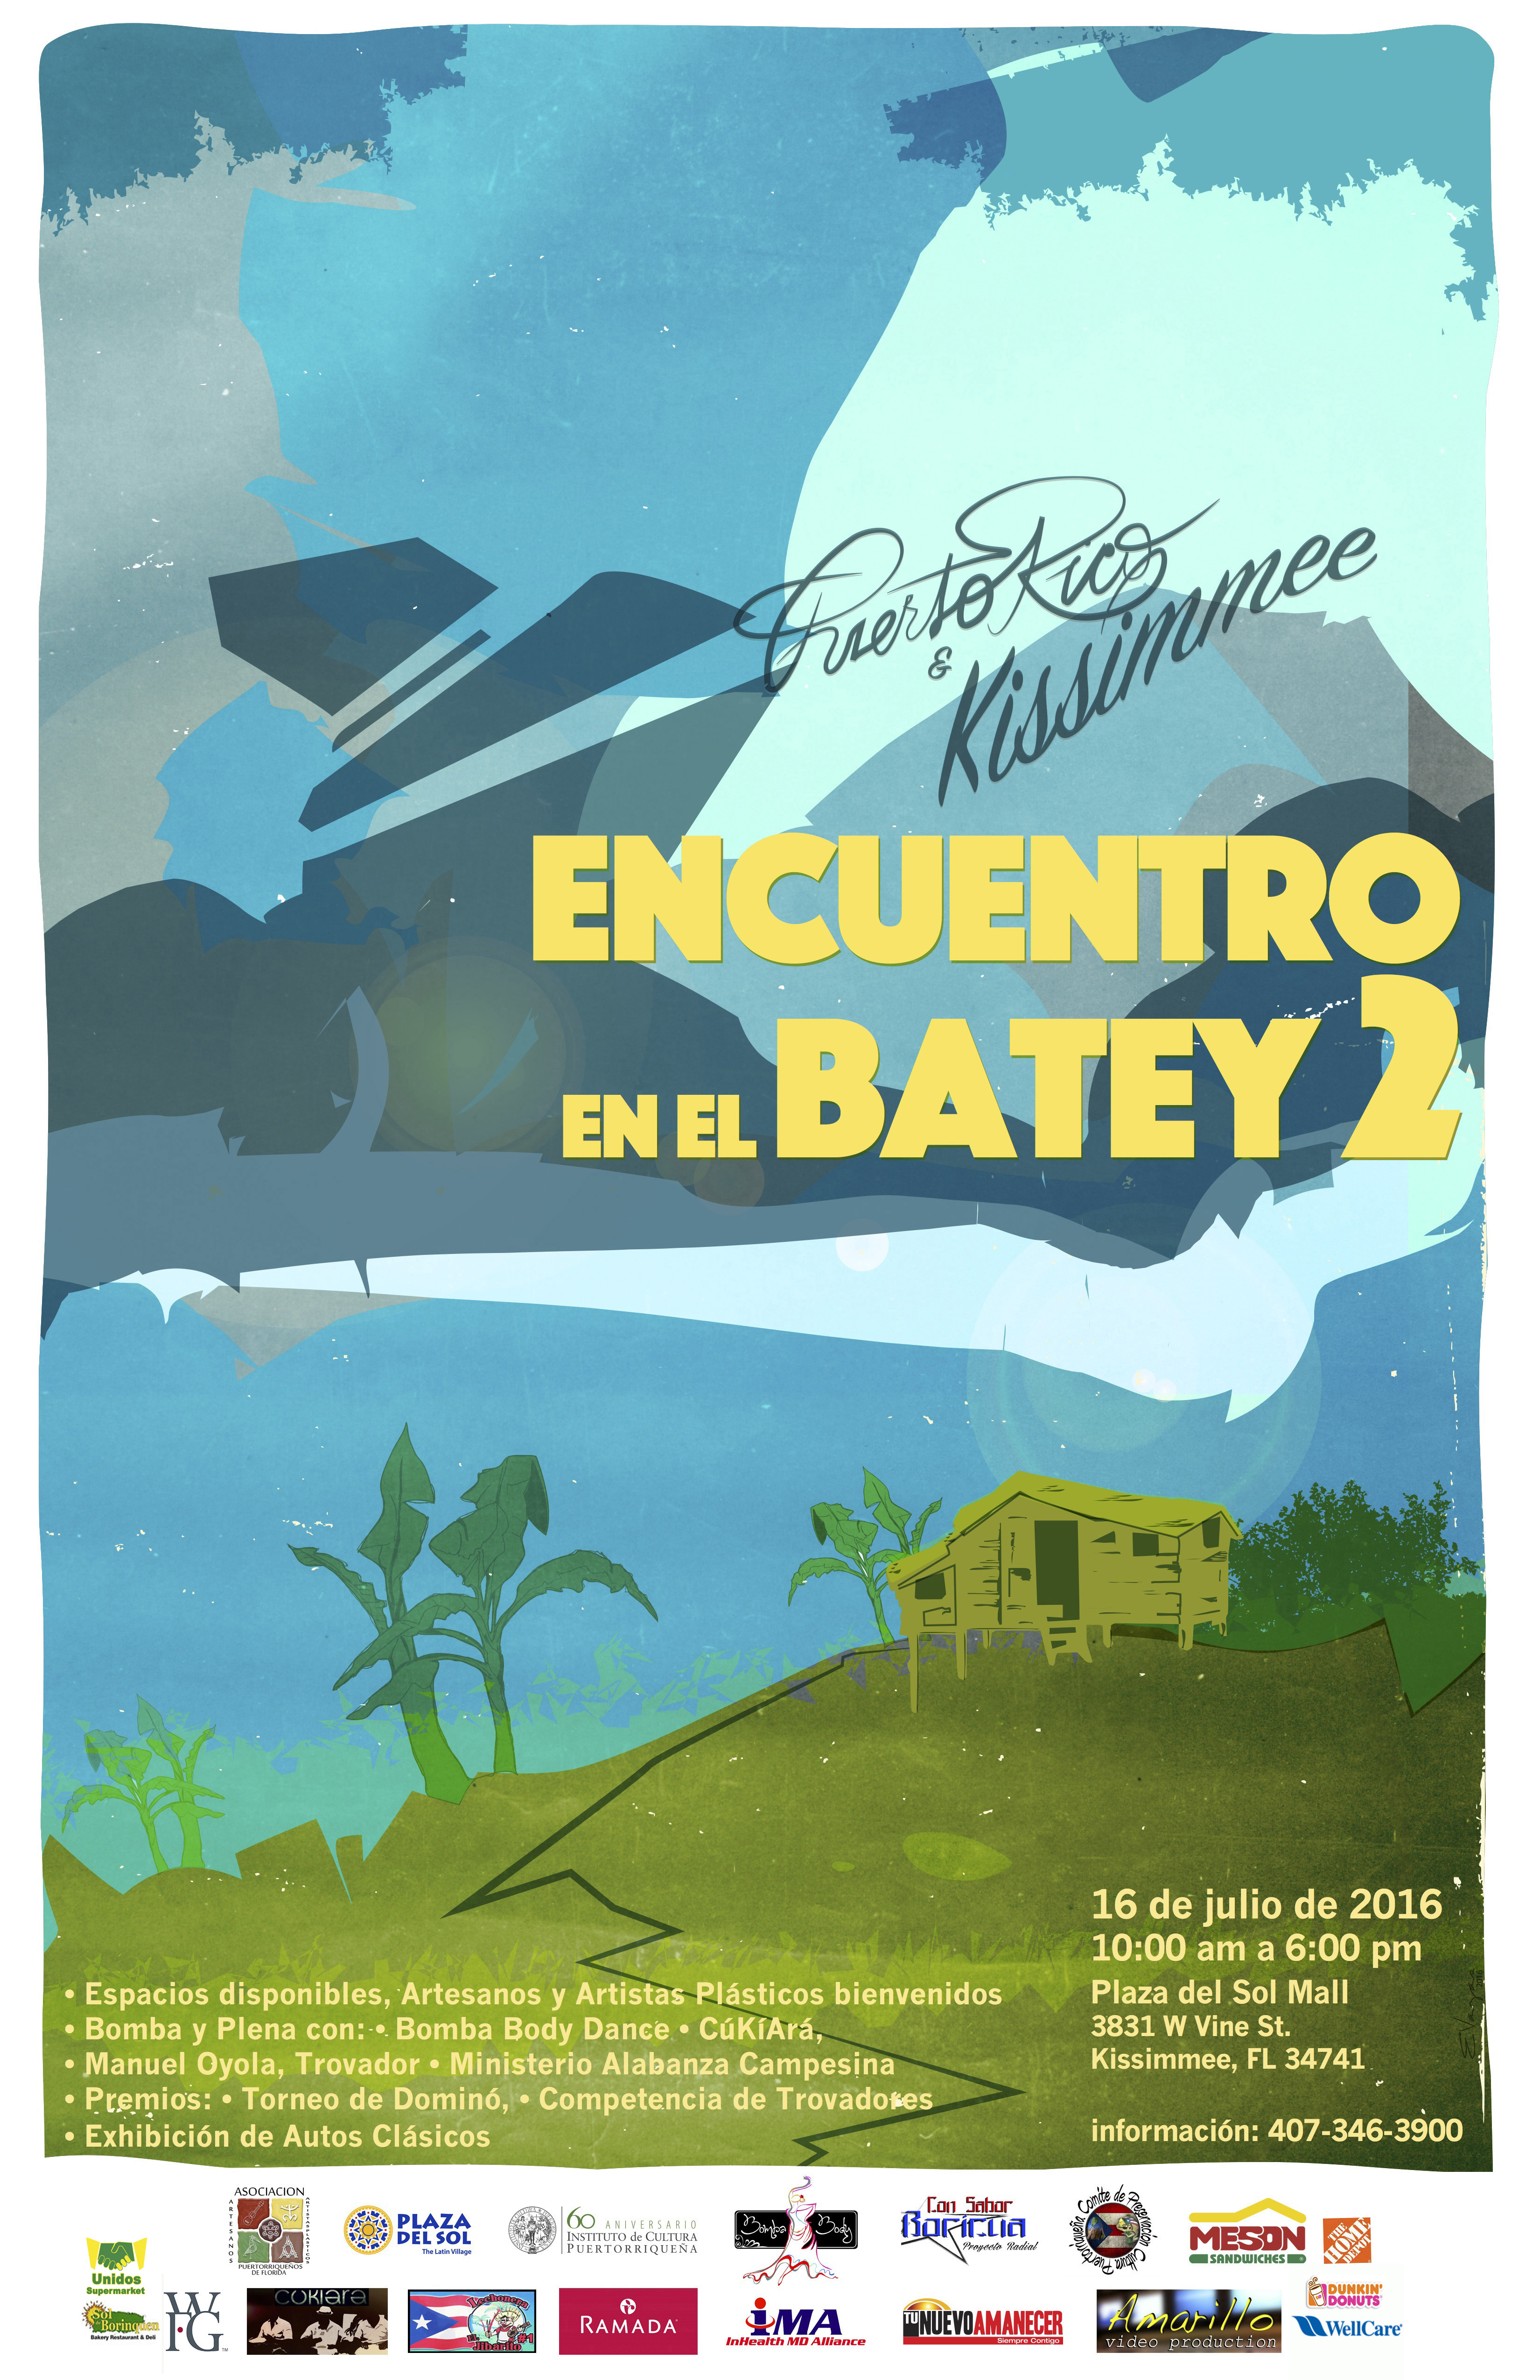 Afiche Encuentro en el Batey 2 (Instituto Cultura) 16  julio 2016 (abril) Well Care Home Depot Unido